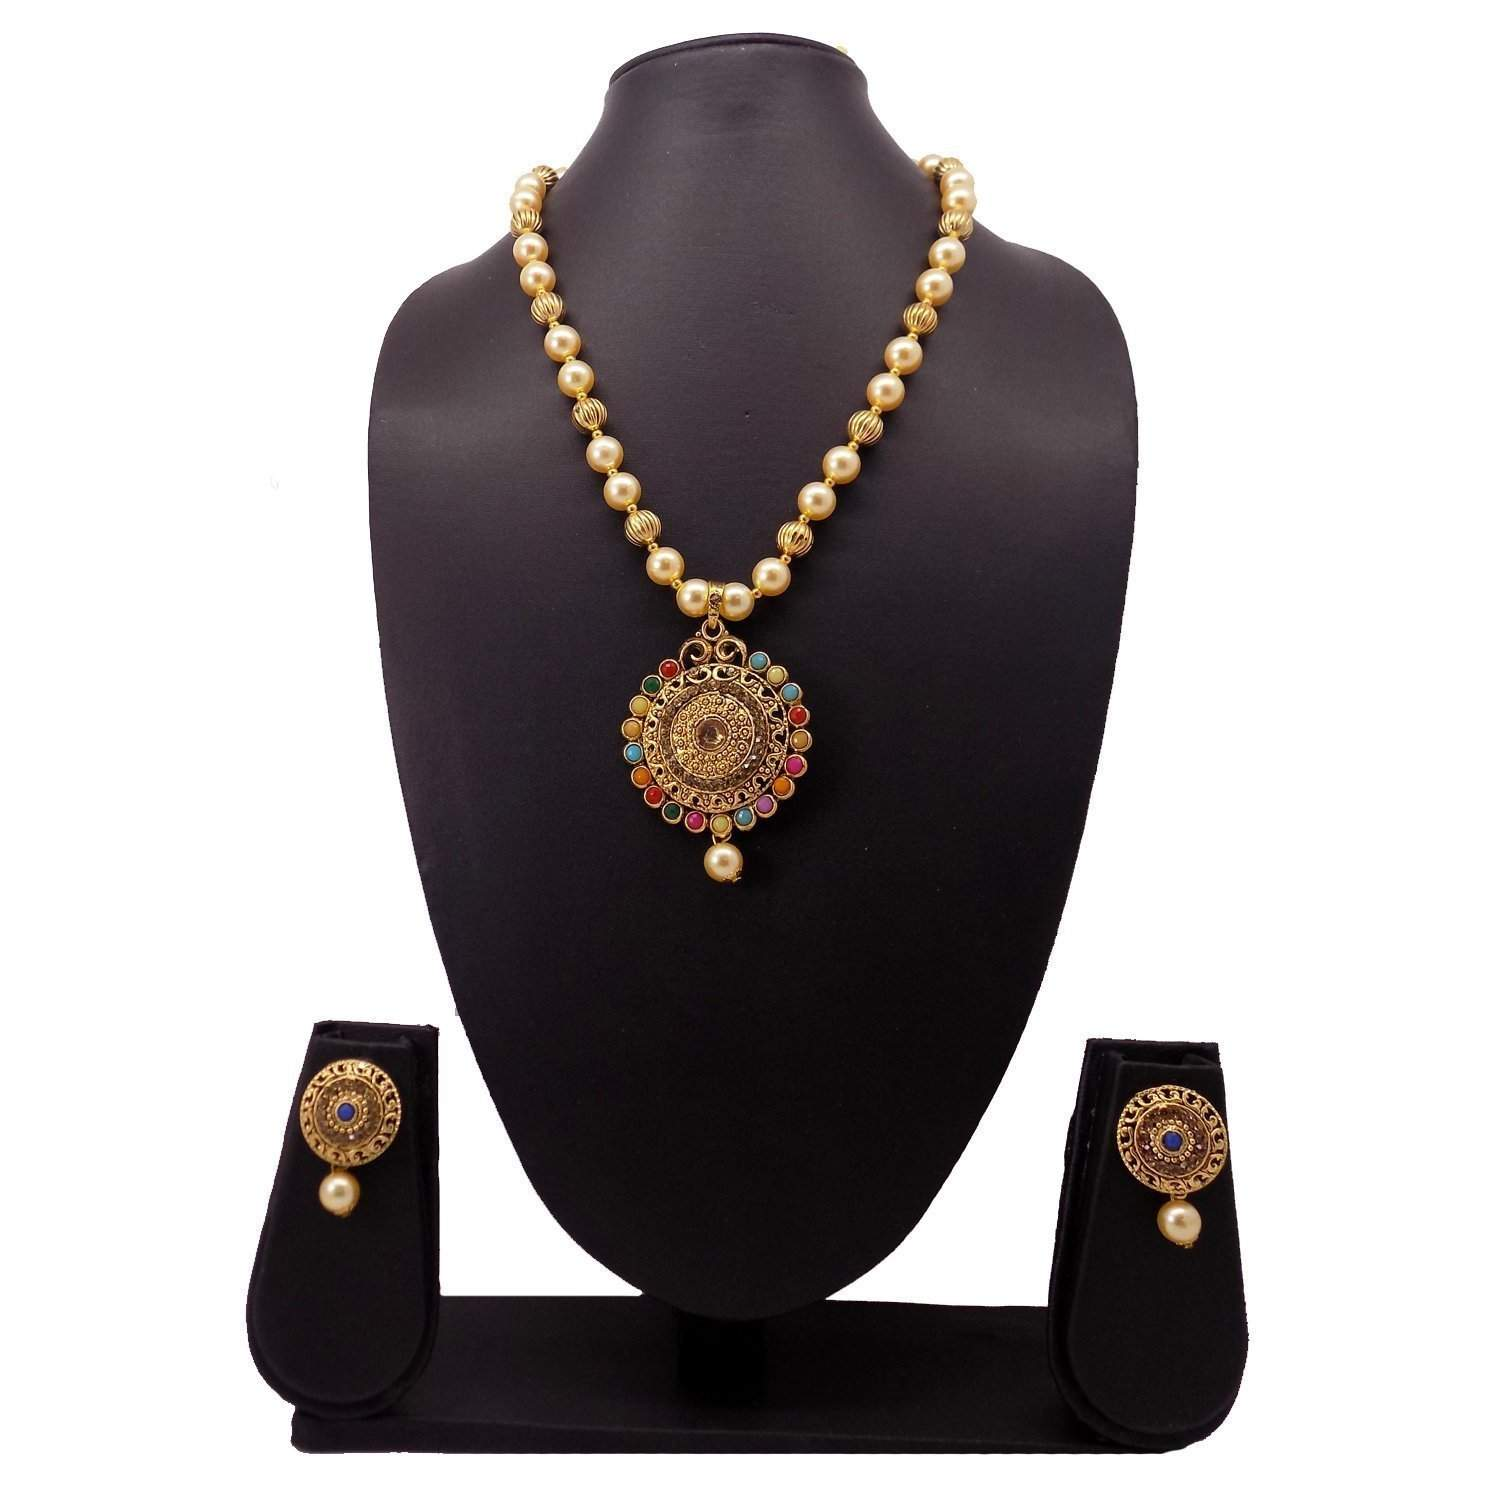 Necklace Set / Jewelry Set with Earring - Bagaholics Gift